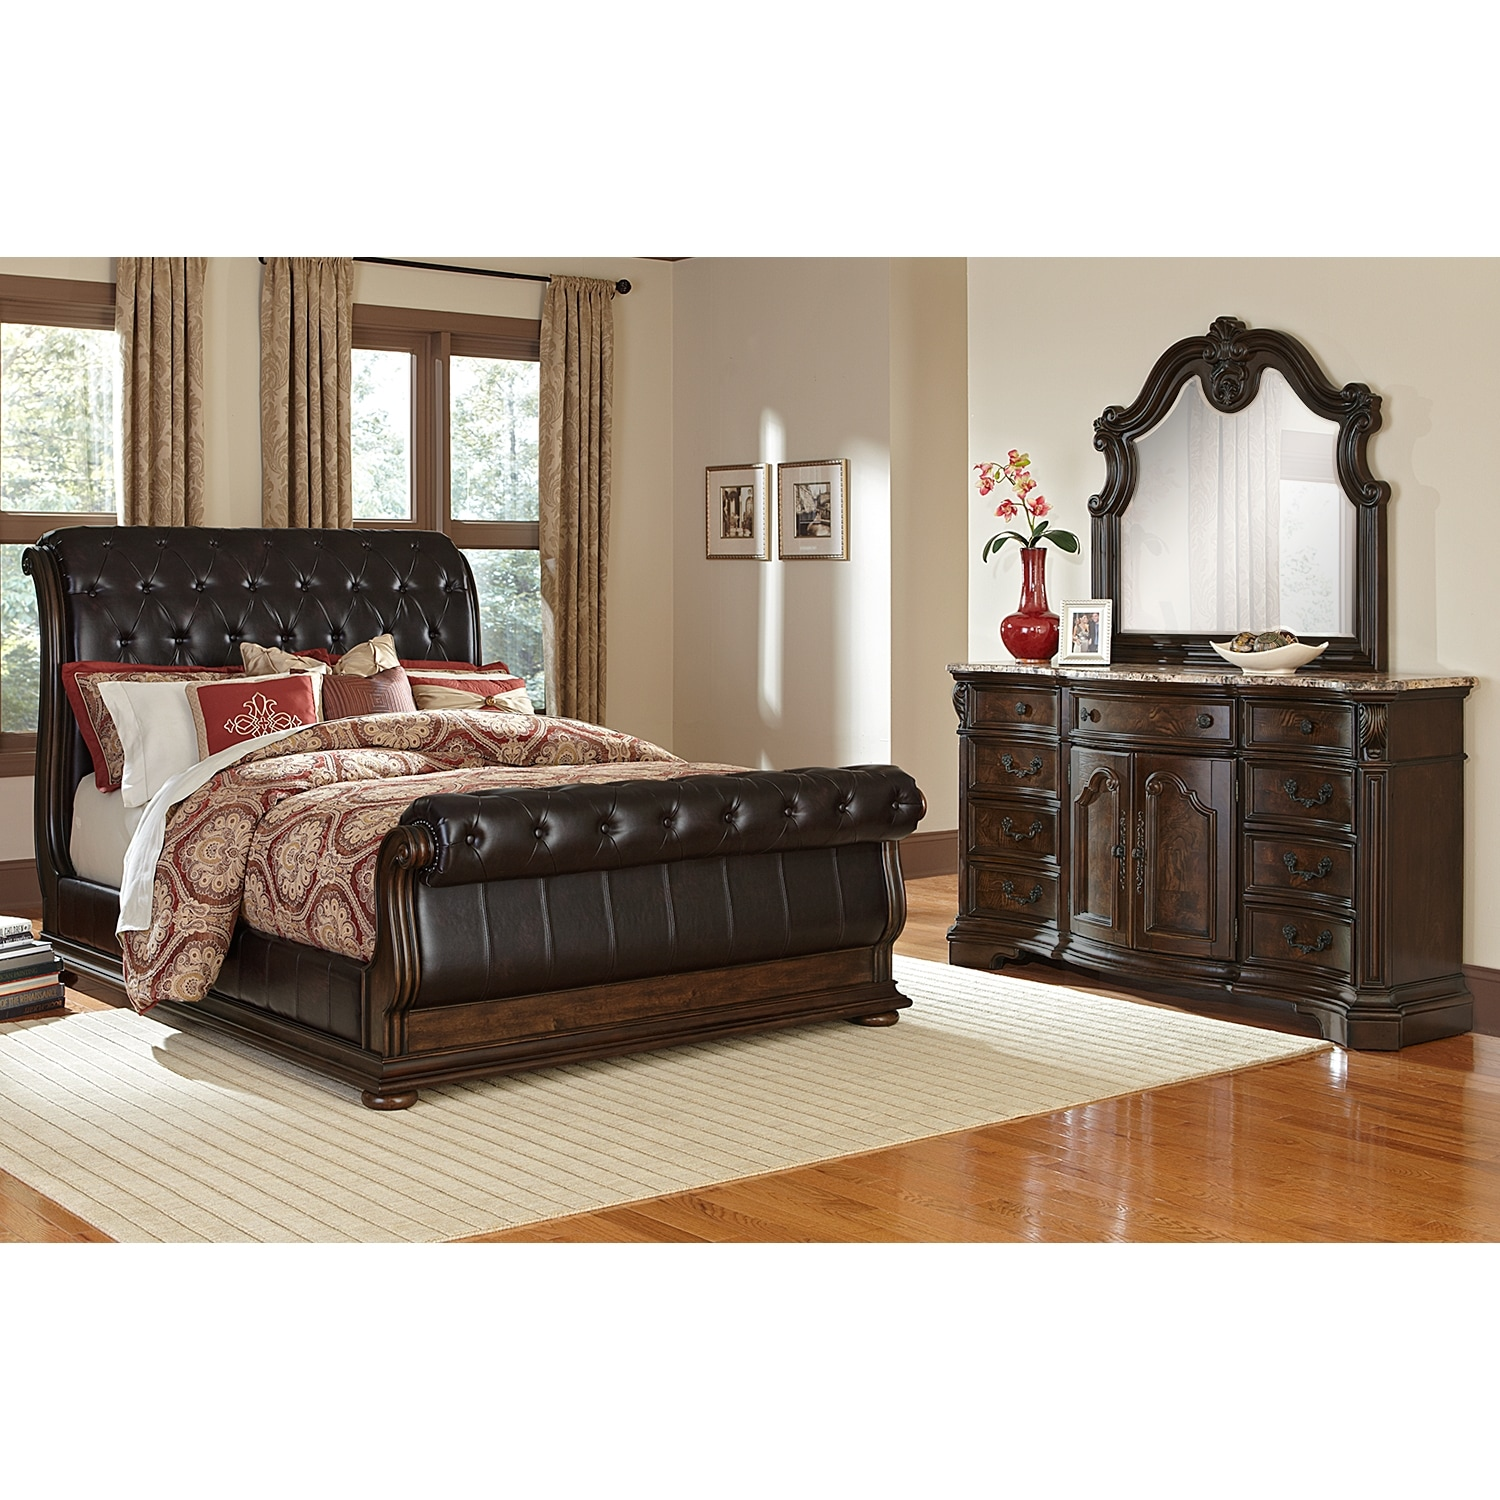 Monticello 5 piece queen sleigh bedroom set pecan american signature furniture American home furniture bedroom sets